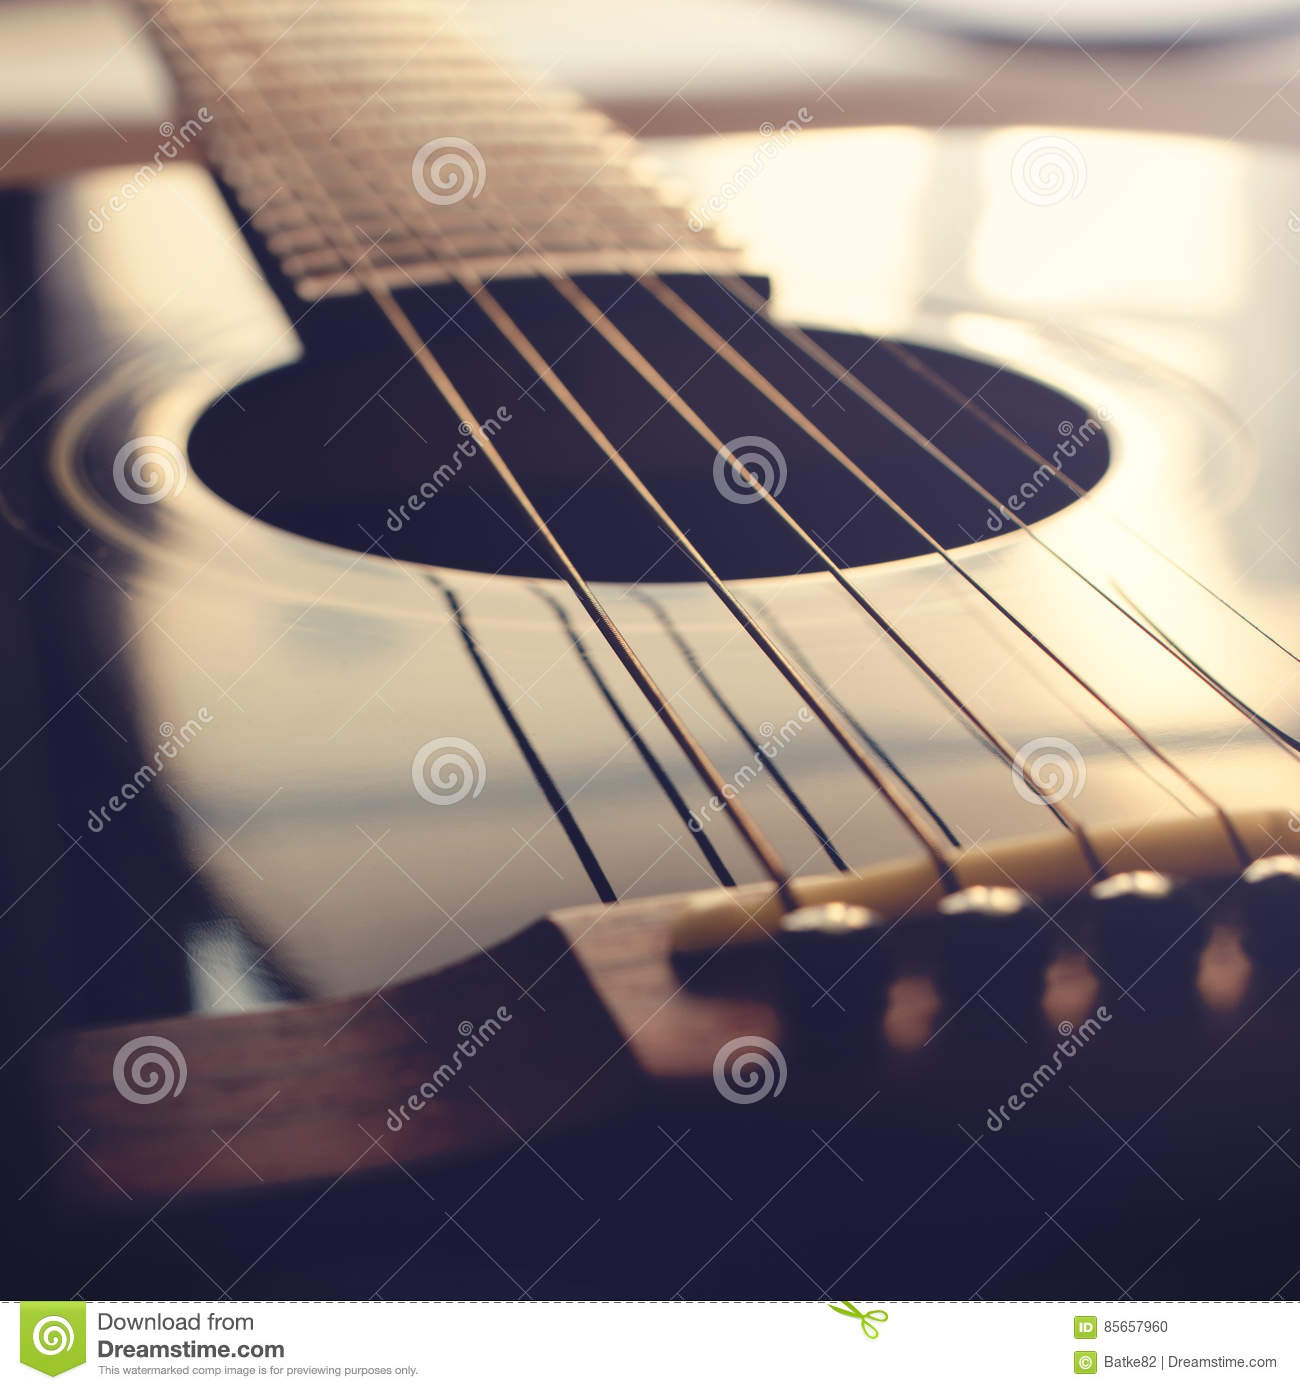 65 668 Acoustic Guitar Photos Free Royalty Free Stock Photos From Dreamstime